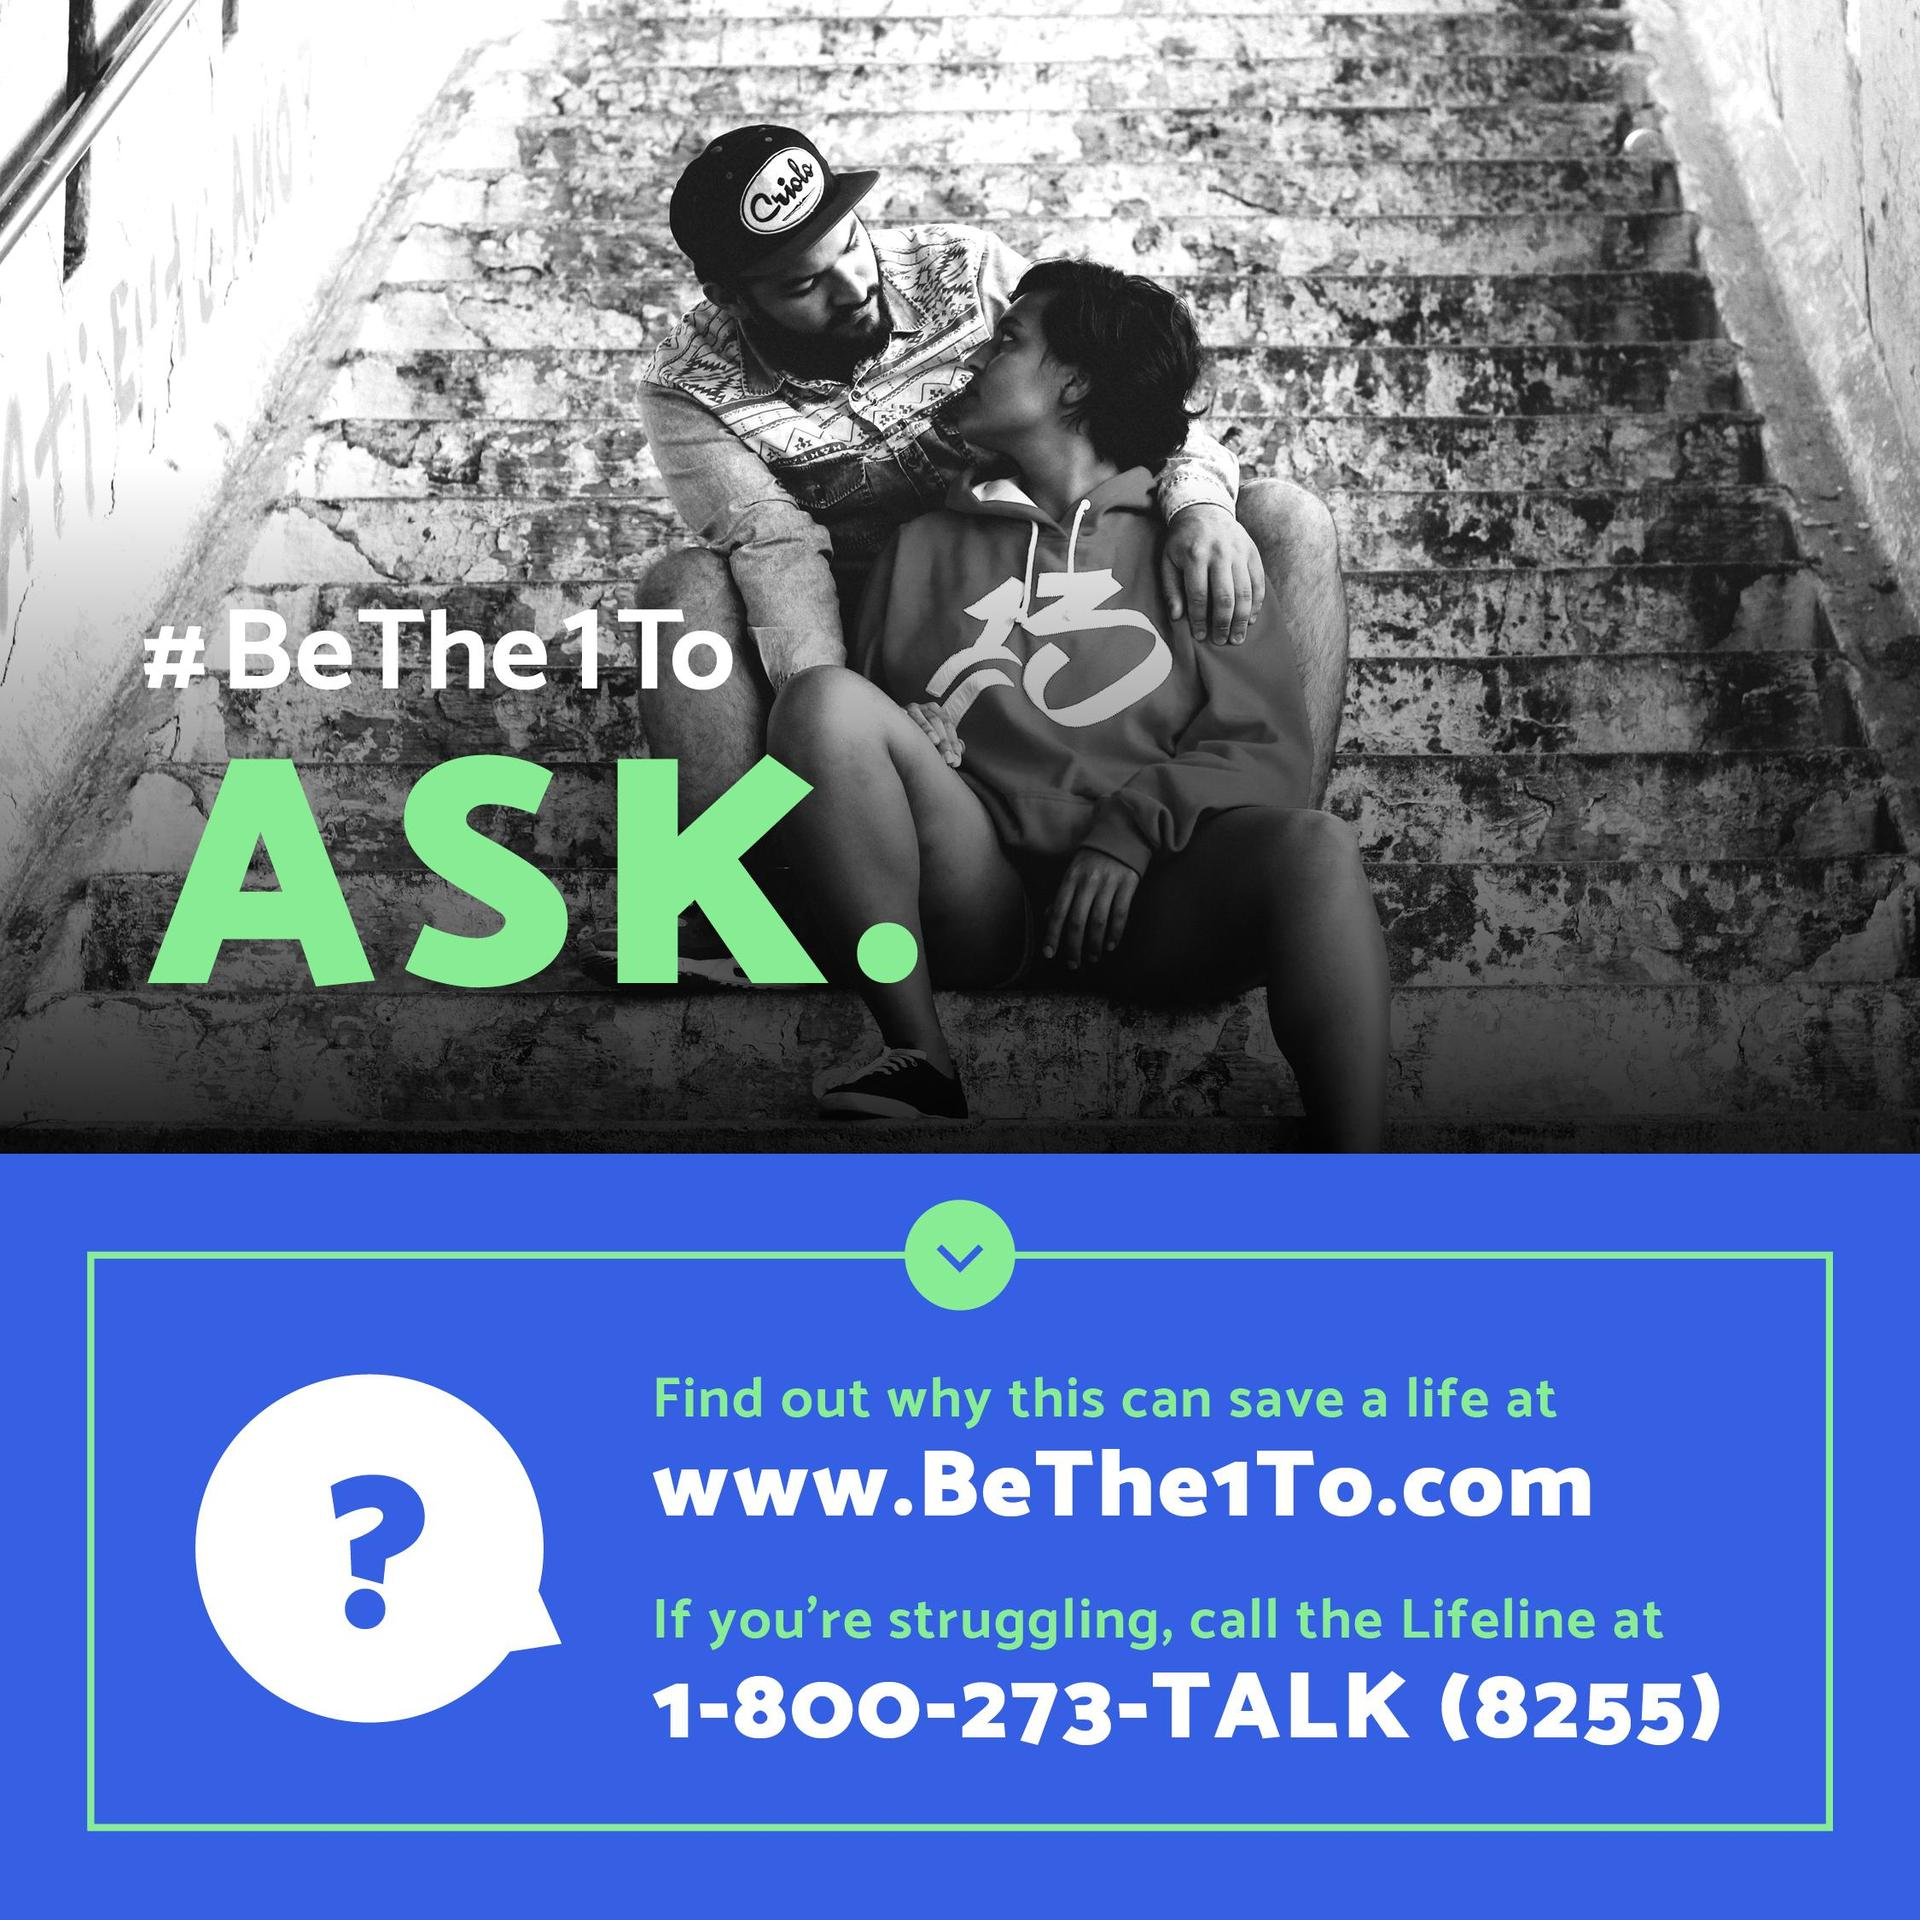 Be the one to ask